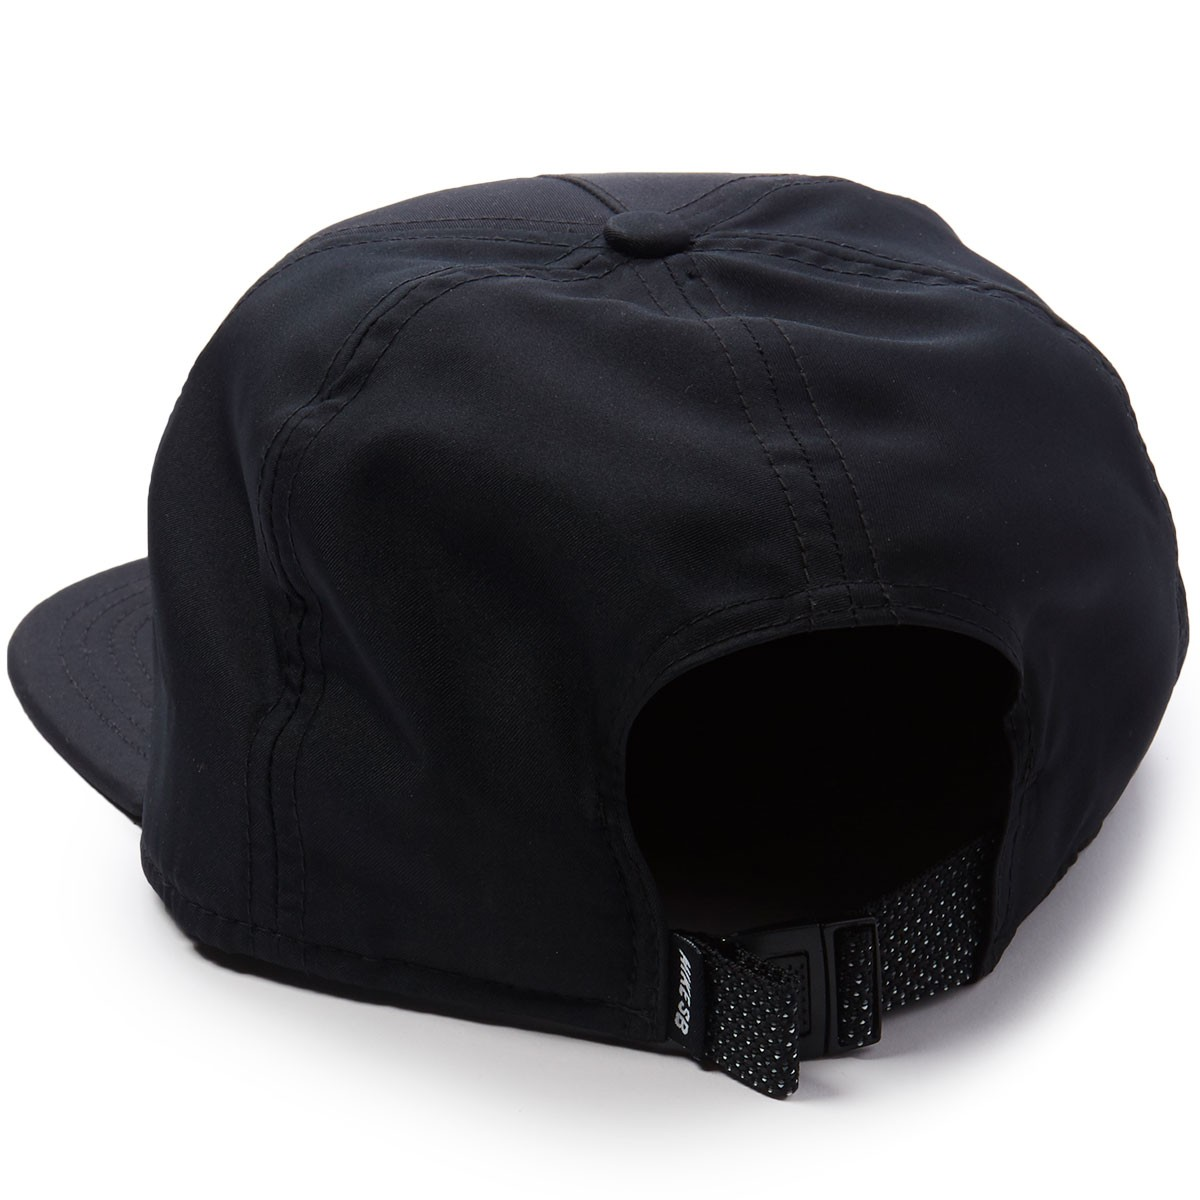 abe19f62dd1 Nike SB Dry Hat - Black Black Dark Antique Black